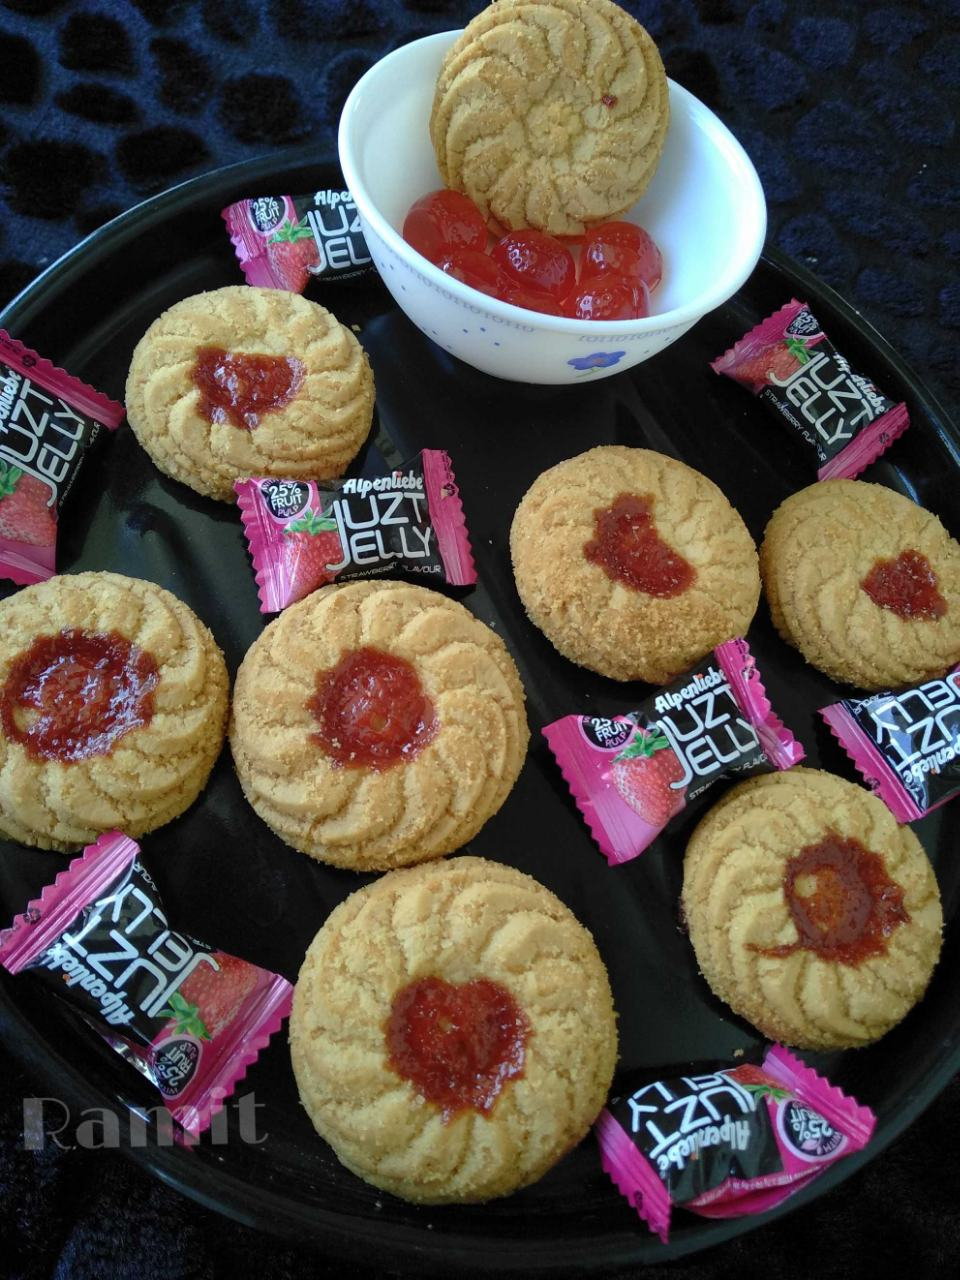 JuztJellyCookies/Fingerprint Cookies.......- Cookies made with innovation, earlier i used to make these cookies using jam of any brand & of any flavour, today i did innovation using Juzt Jelly, it really turned out awesome, must try out. (Note- I used strawberry Juzt Jelly but you can use any flavour of Alpenliebe Juzt Jelly, to give flavour to your cookies)